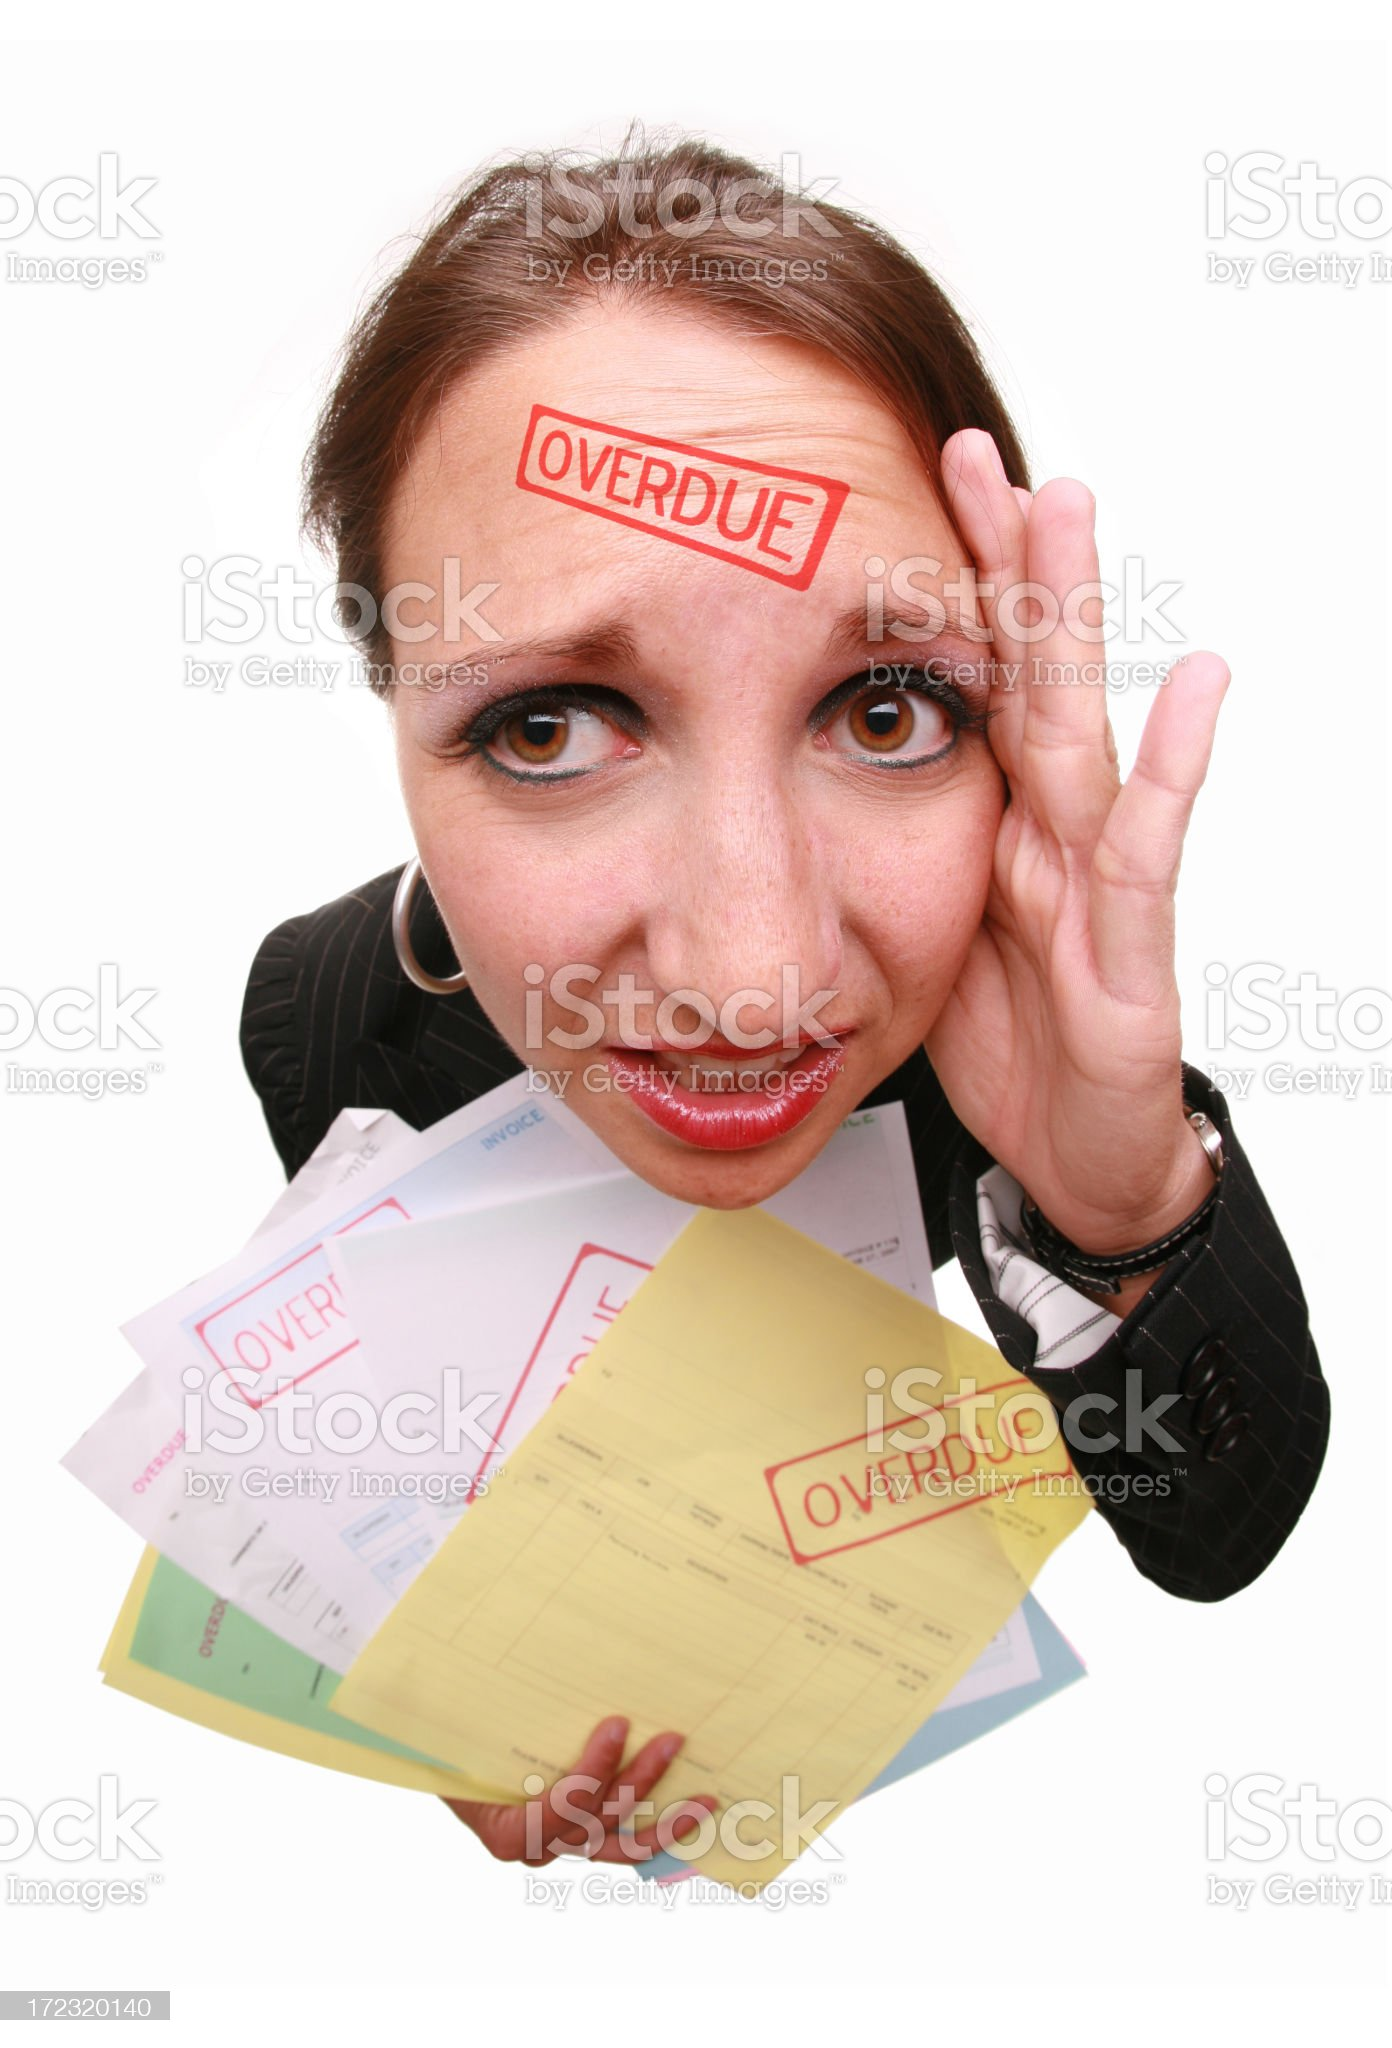 Overdue Invoices royalty-free stock photo